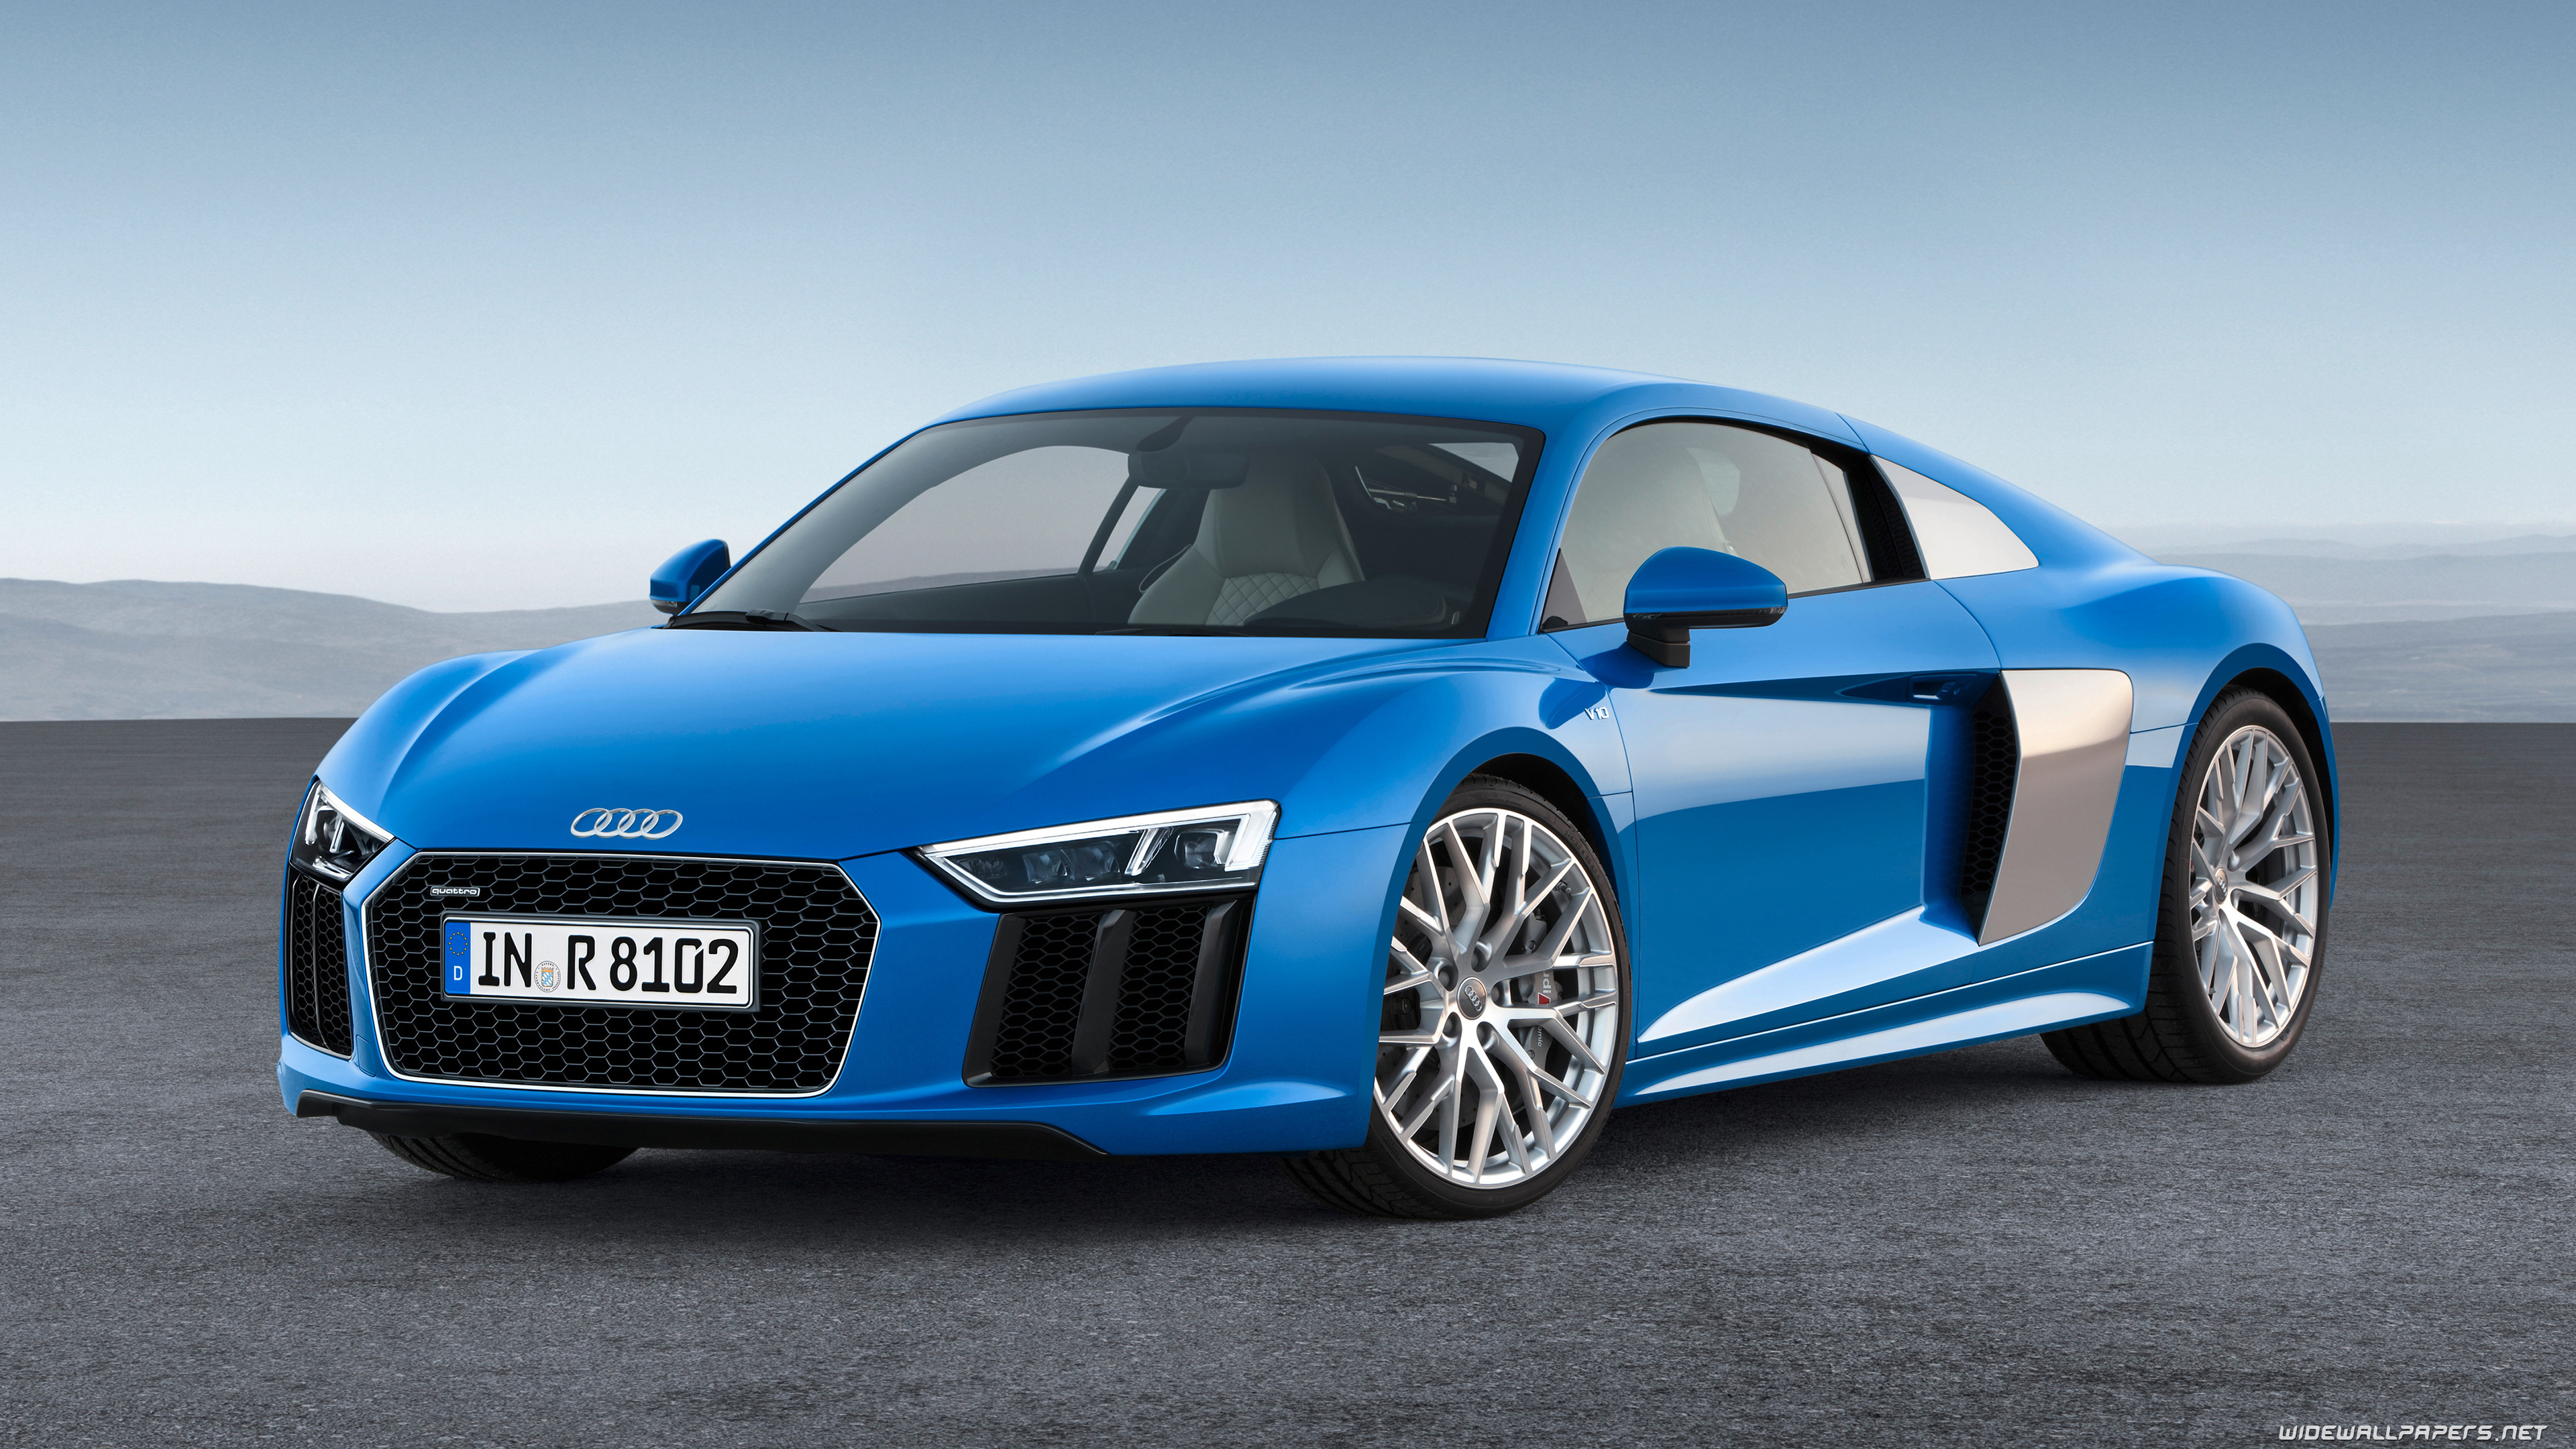 Audi R8 cars desktop wallpapers 4K Ultra HD 3840x2160